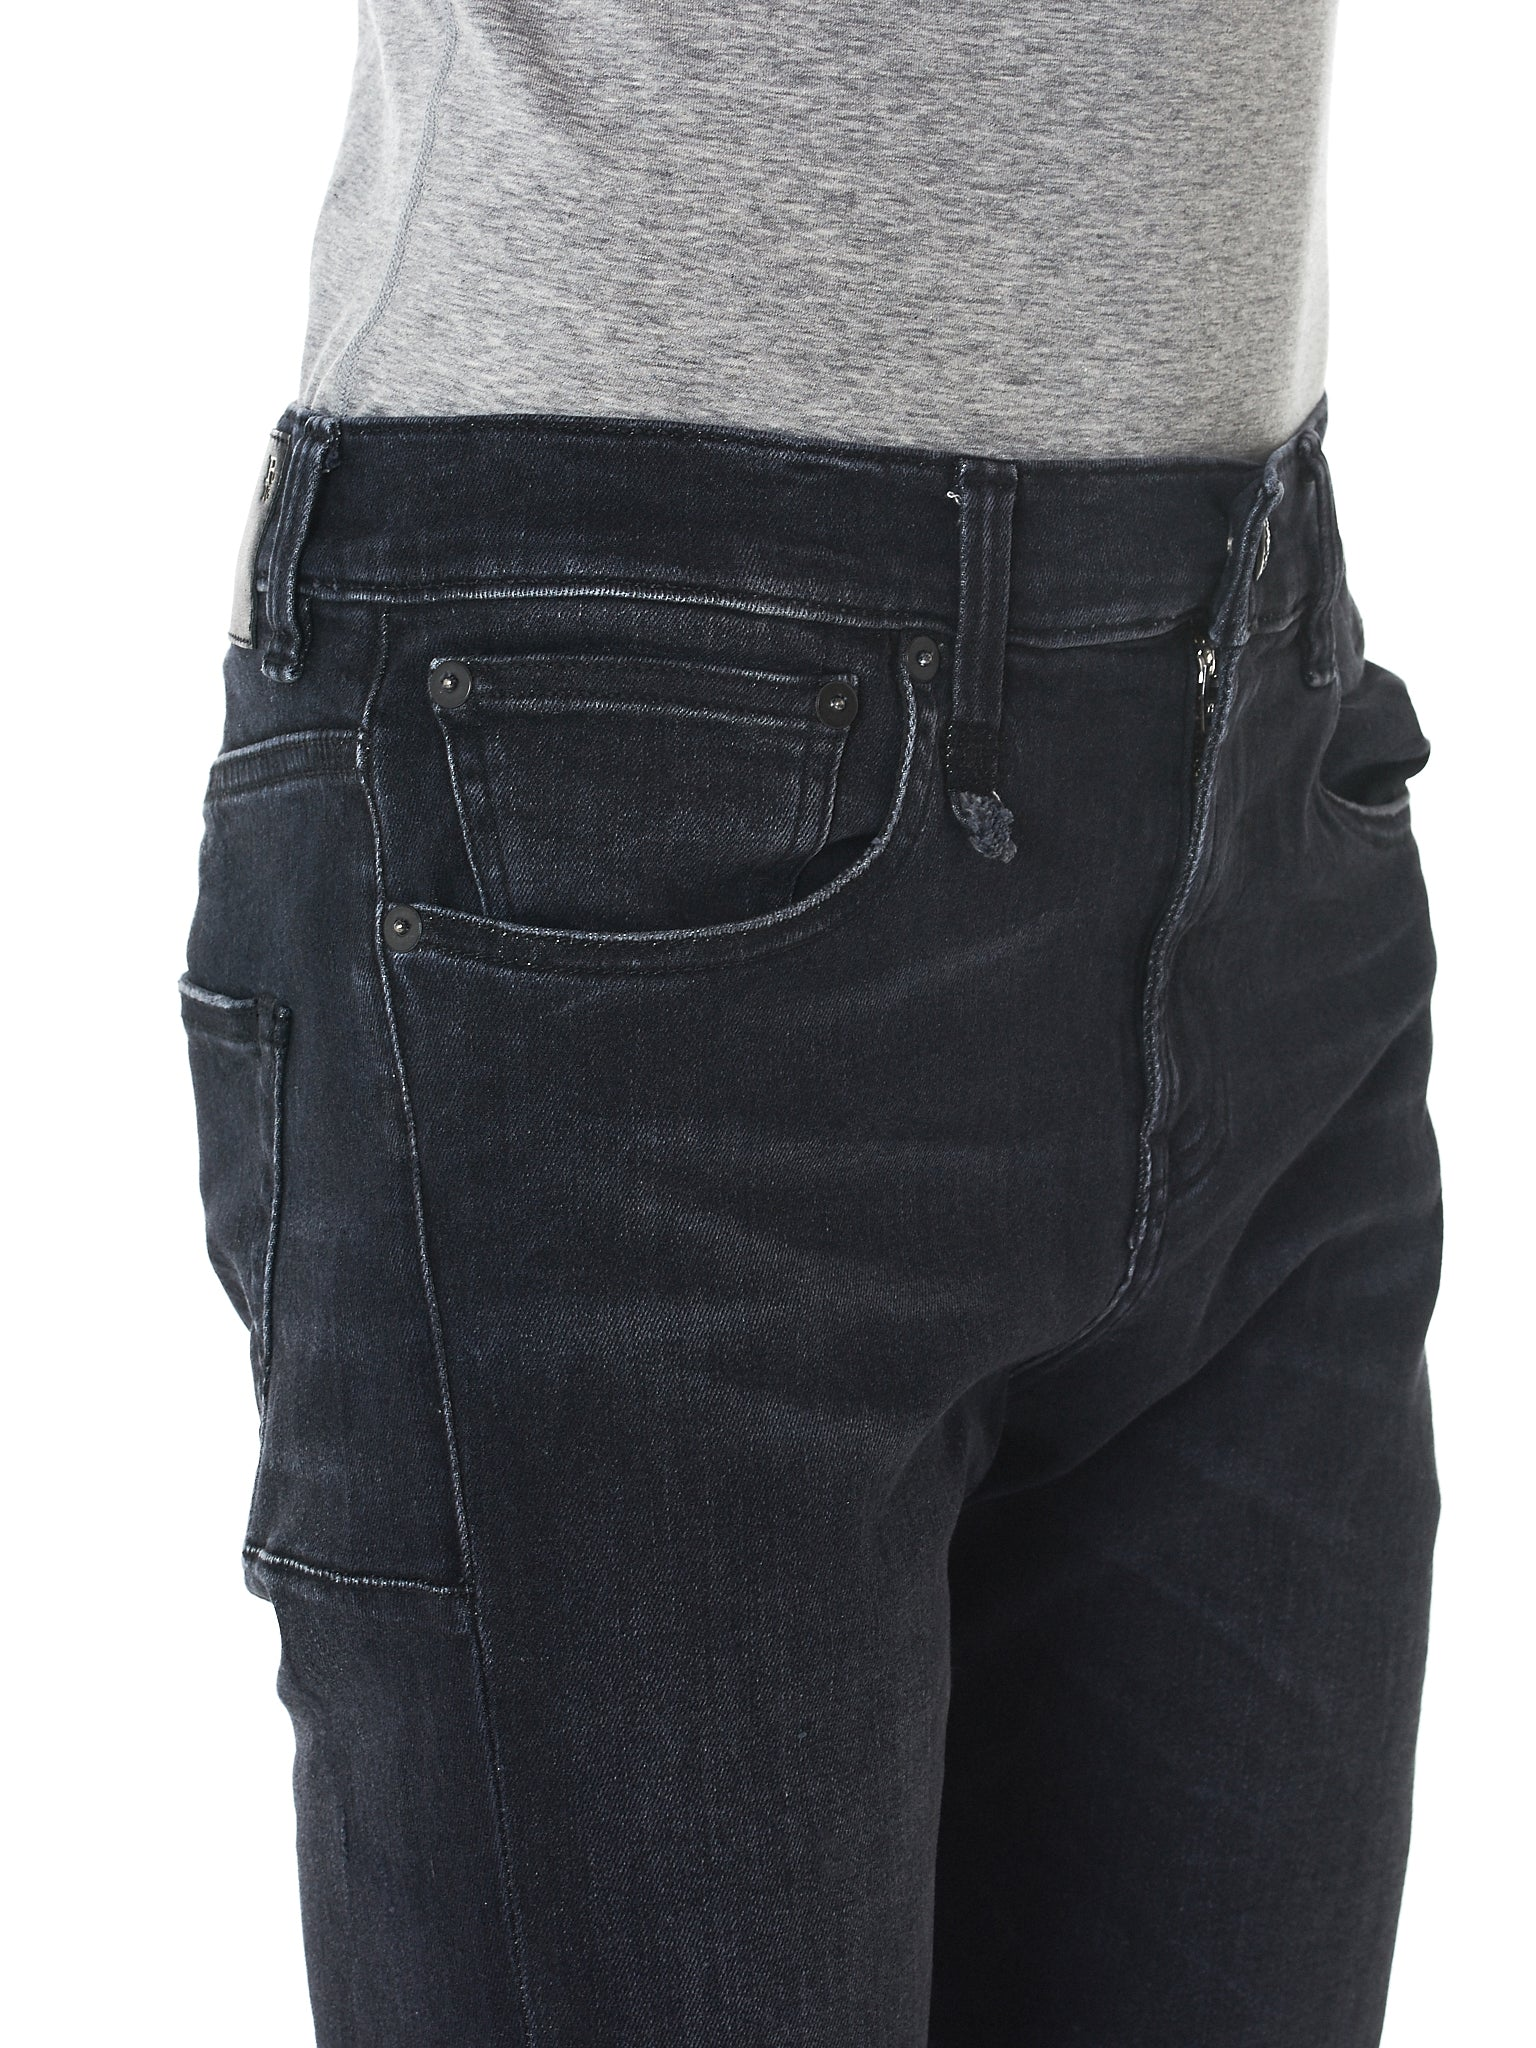 R13 Slim-Fit Jeans - Hlorenzo Detail 2